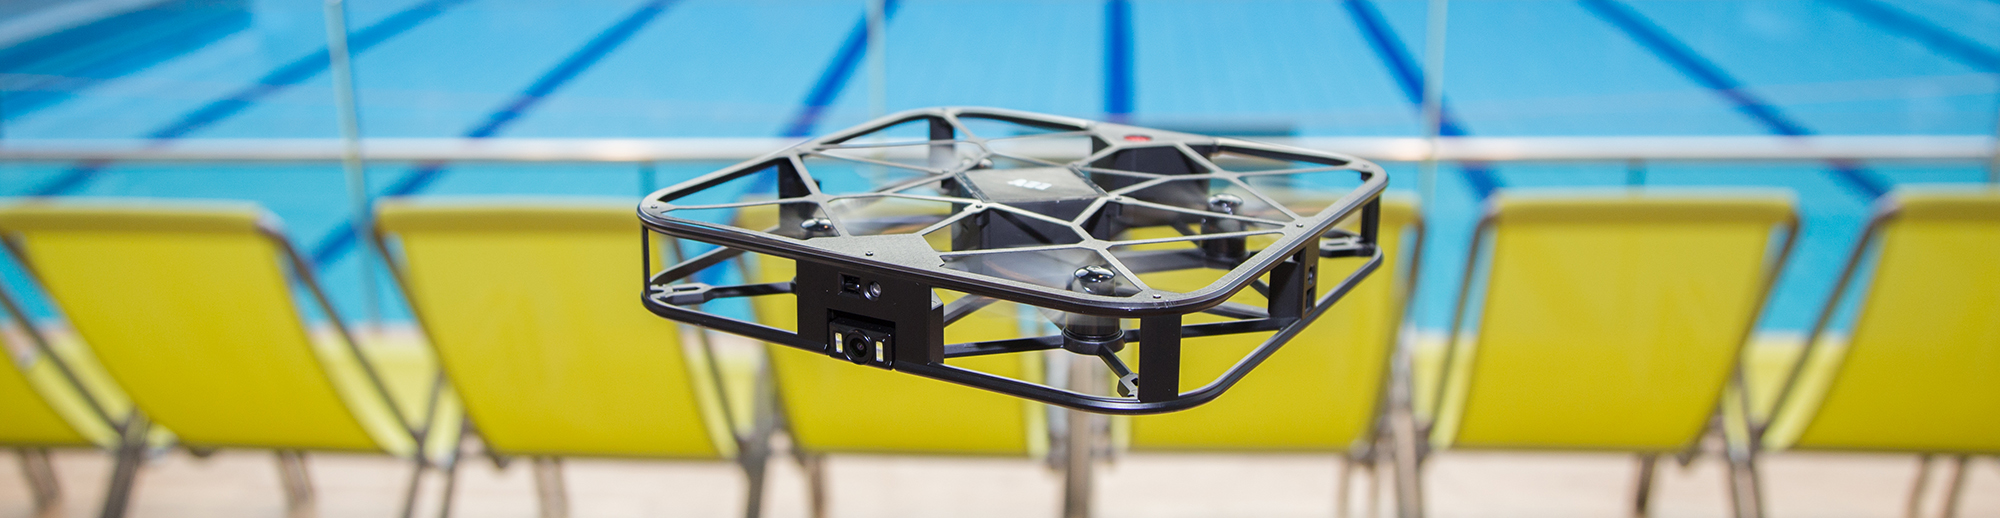 SPARROW 360 camera drone by AEE